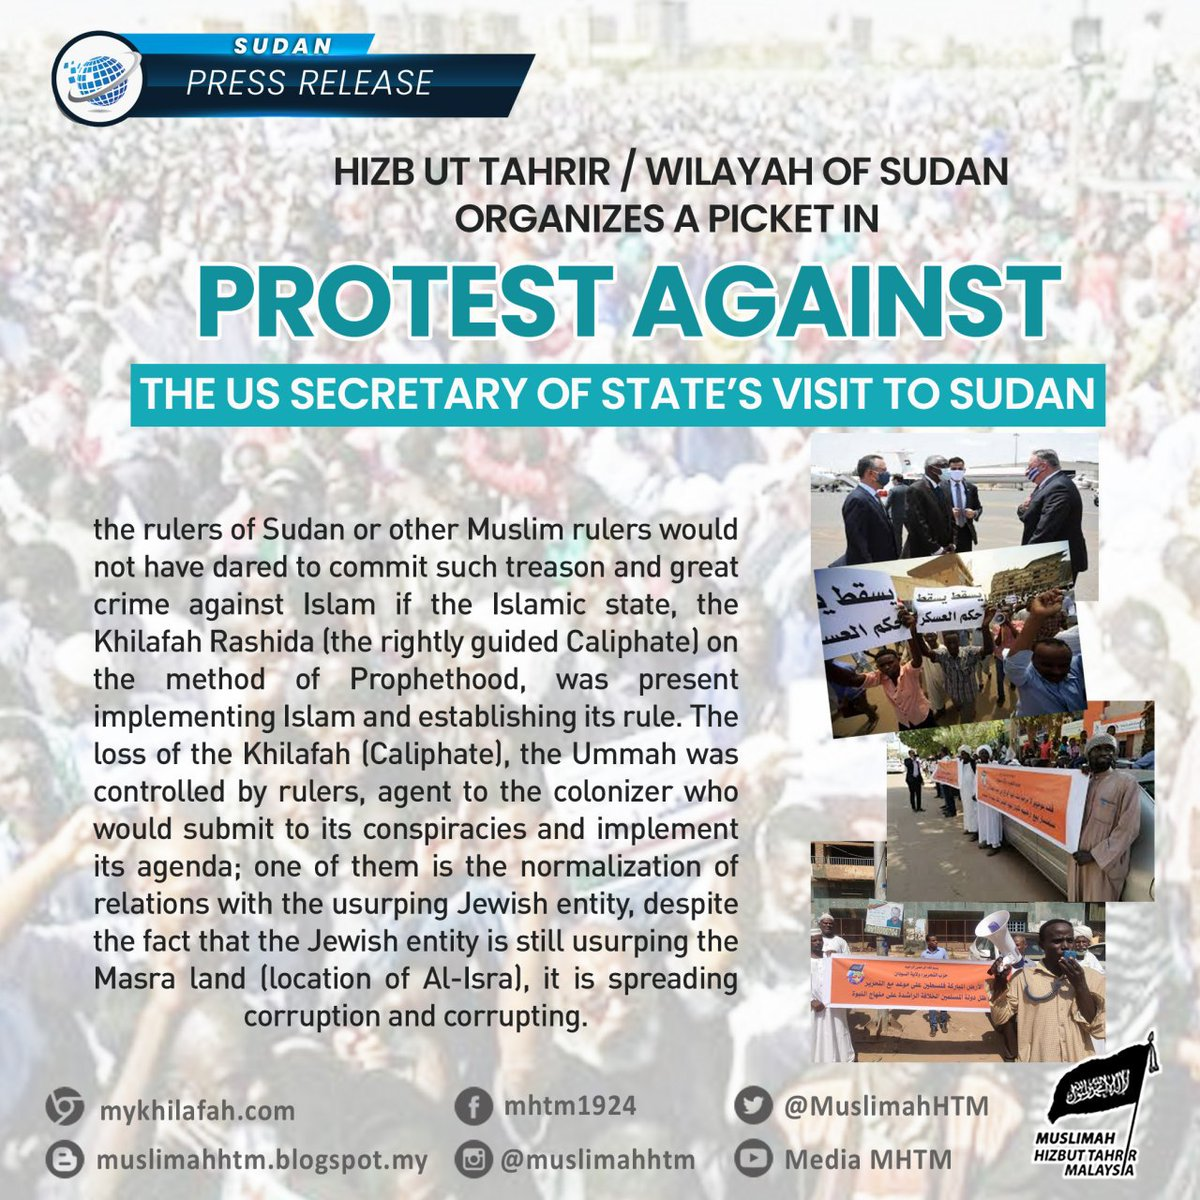 [Press Release- #SUDAN]  Hizb ut Tahrir Wilayah of Sudan Organizes a Picket in Protest Against the US Secretary of State's Visit to Sudan  Ustath Muhammad Jami' (Abu Ayman), Assistant Spokesman of Hizb ut Tahrir / Wilayah of Sudan,..   Full Article: https://t.co/4qhhg2Nz17 https://t.co/F7zOqqNrqw